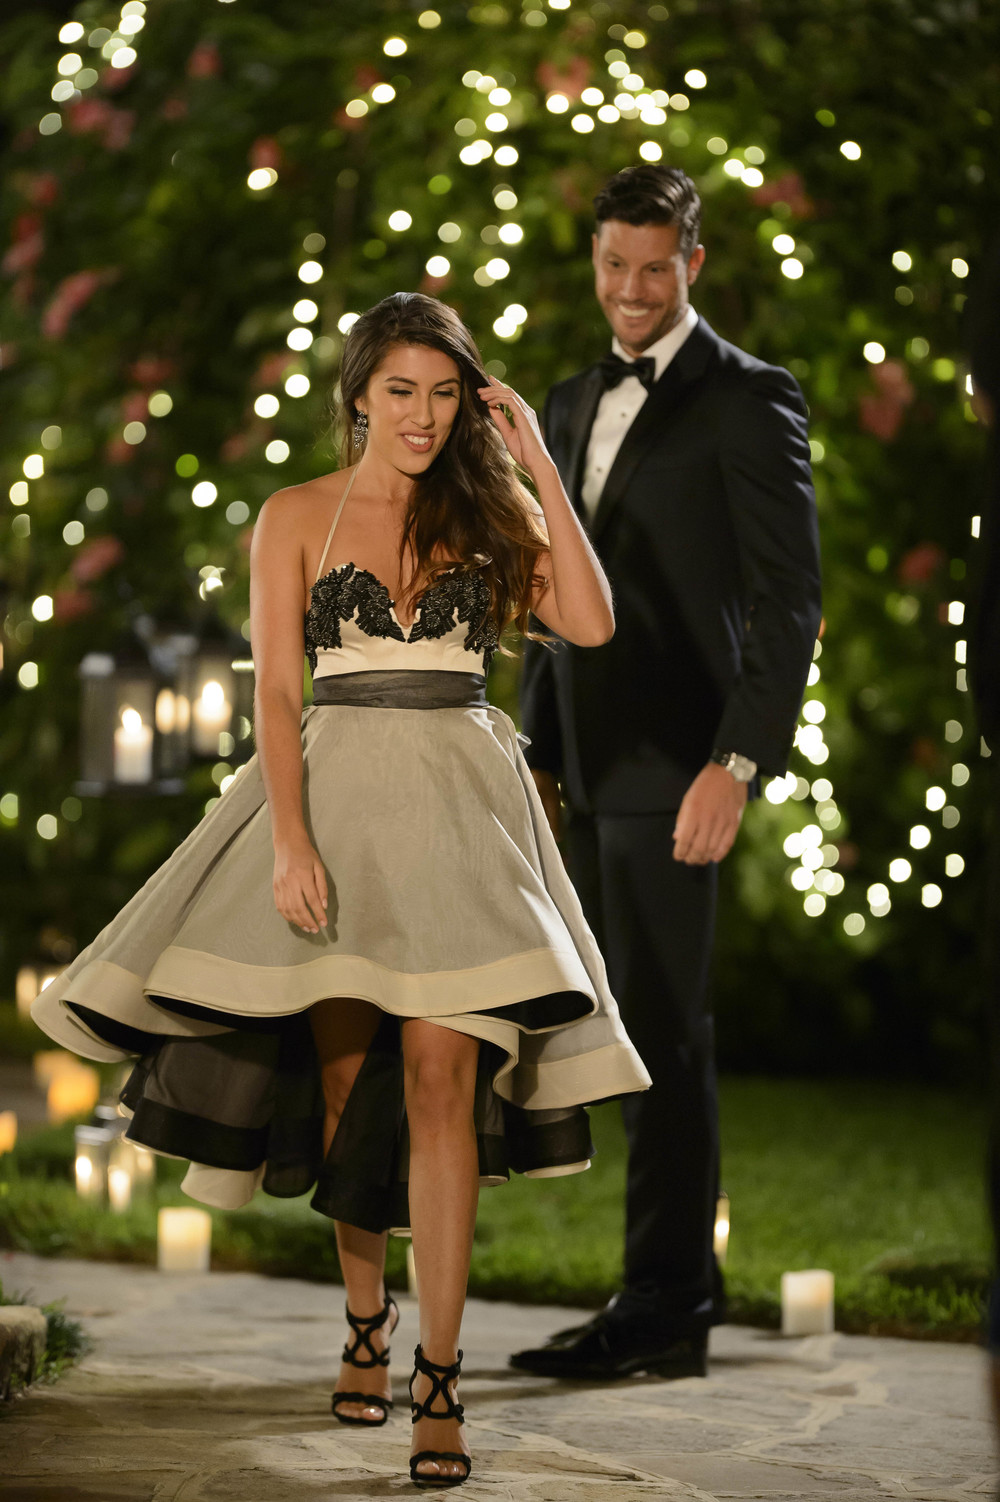 Jasmin and Sam Wood in The Bachelor  image - supplied/Ten Network